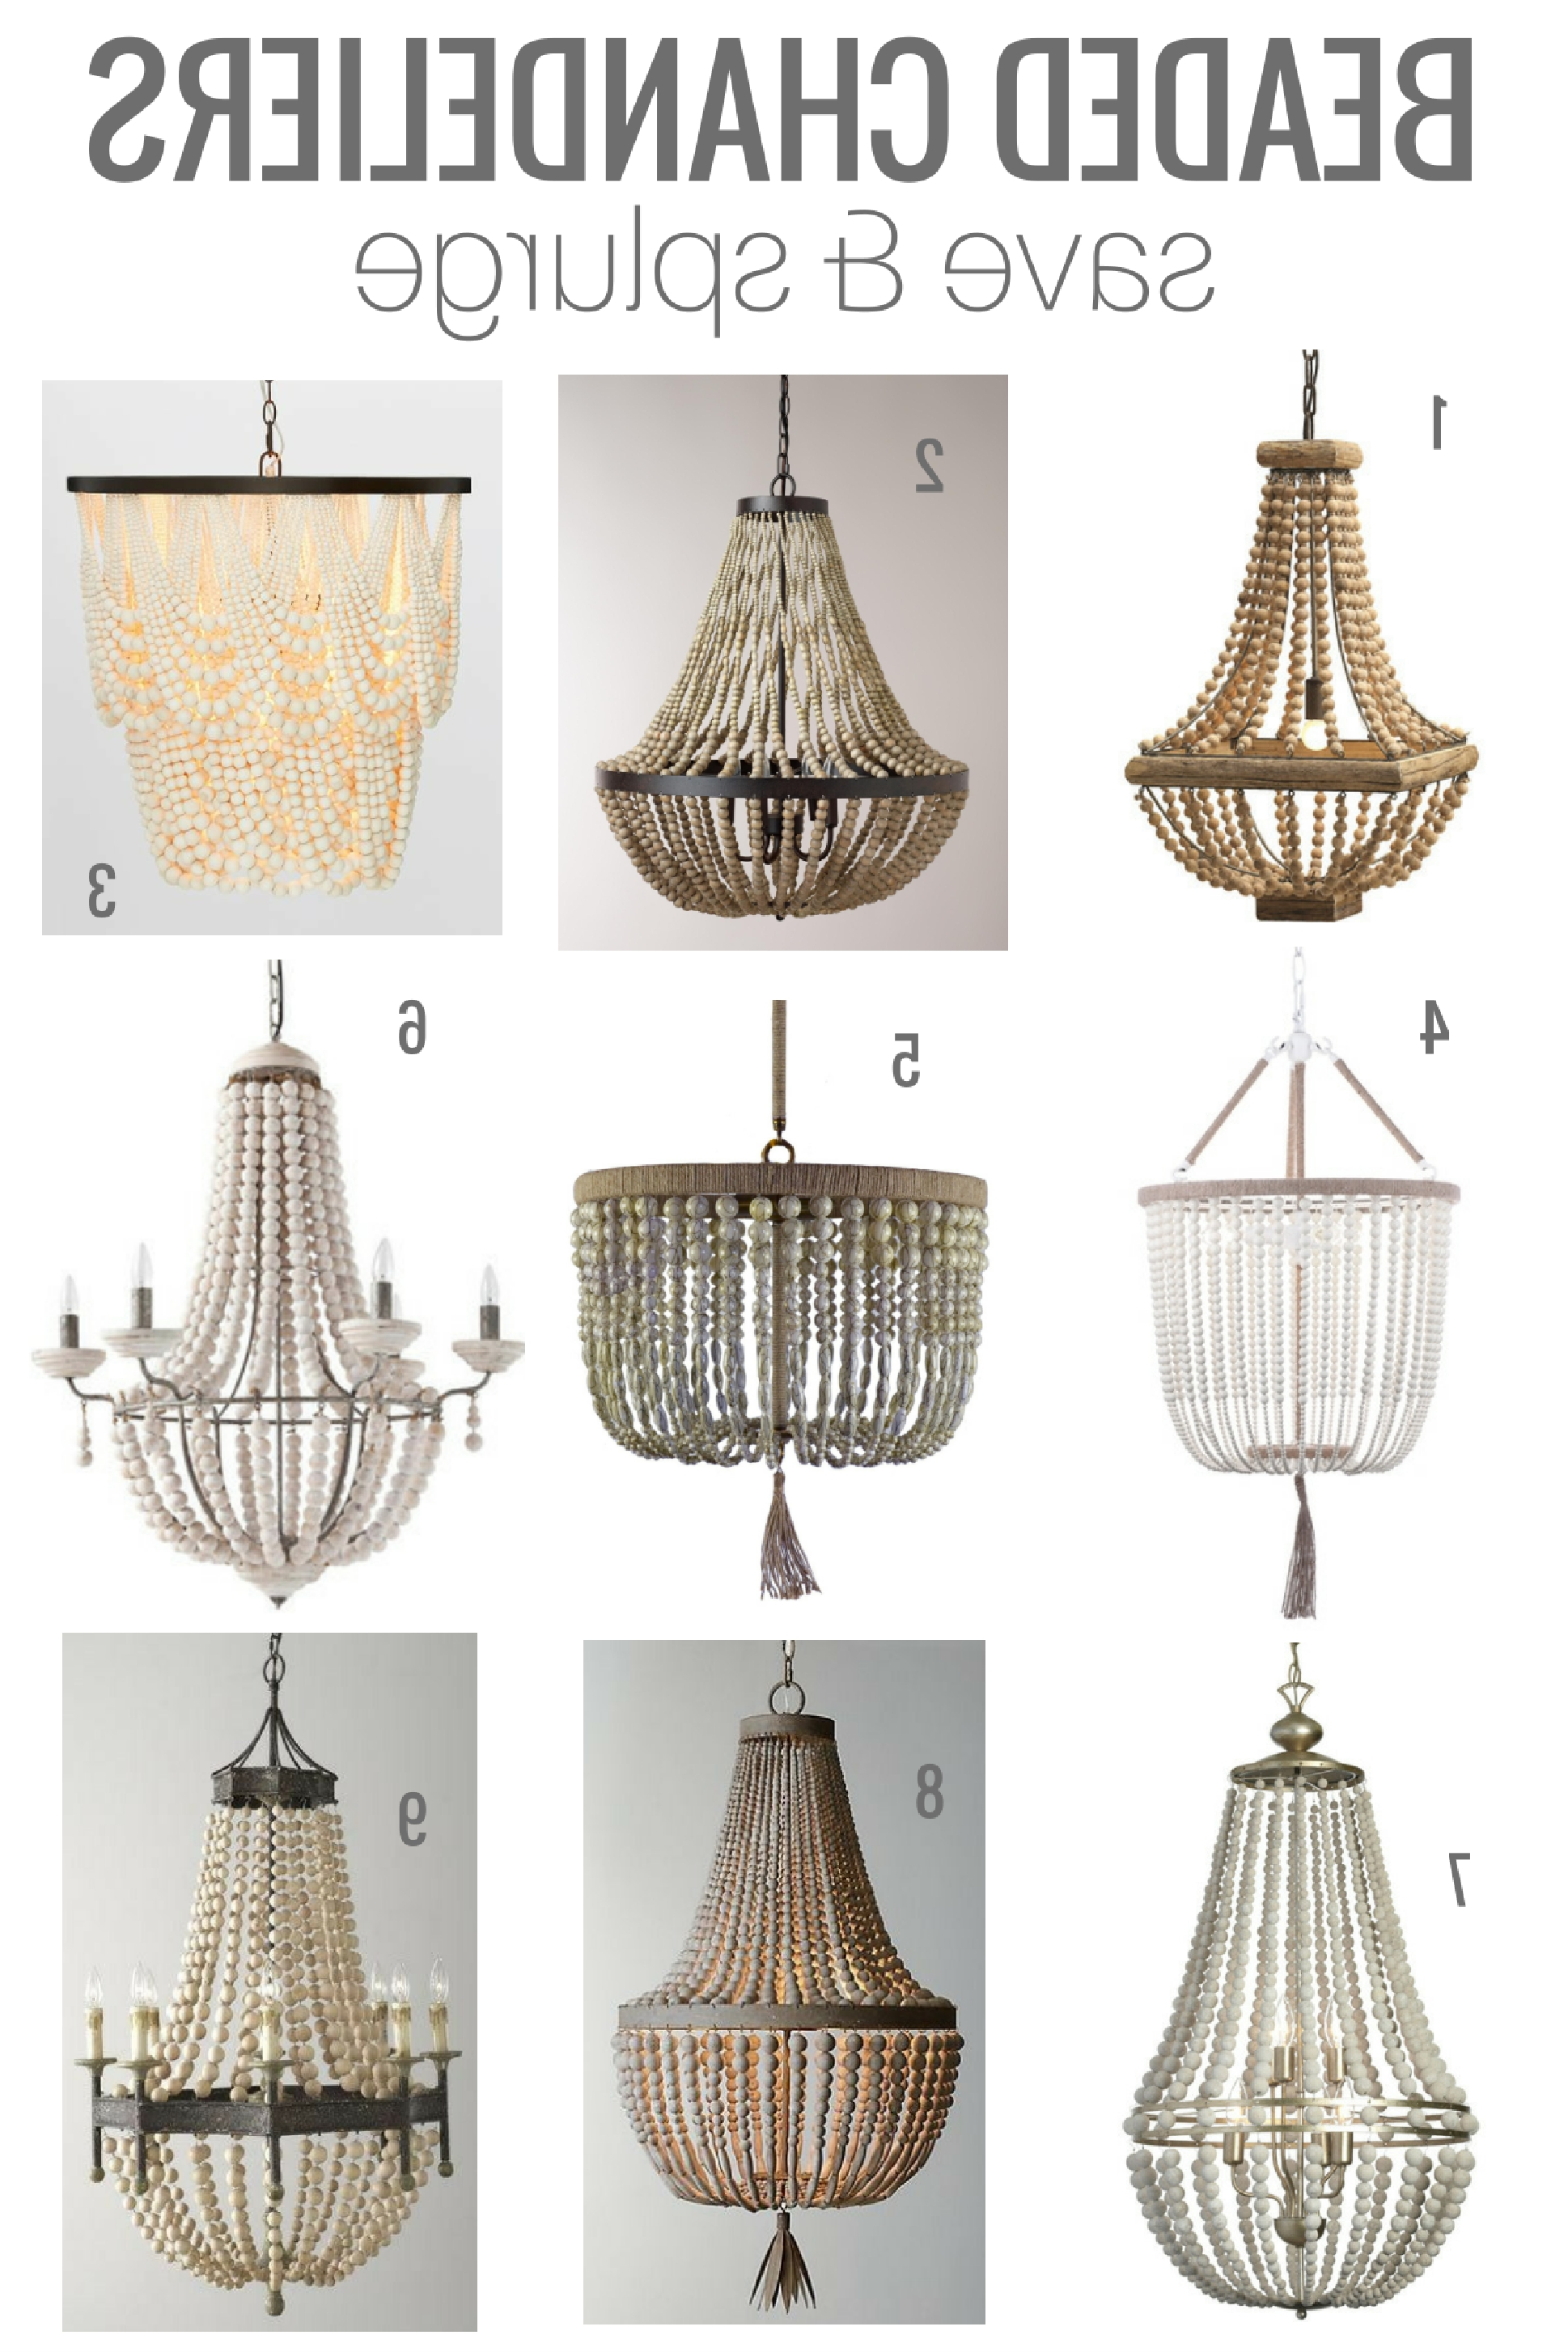 2018 Small Turquoise Beaded Chandeliers Intended For Beaded Chandeliers & Invaluable Lighting Lessons (View 1 of 20)